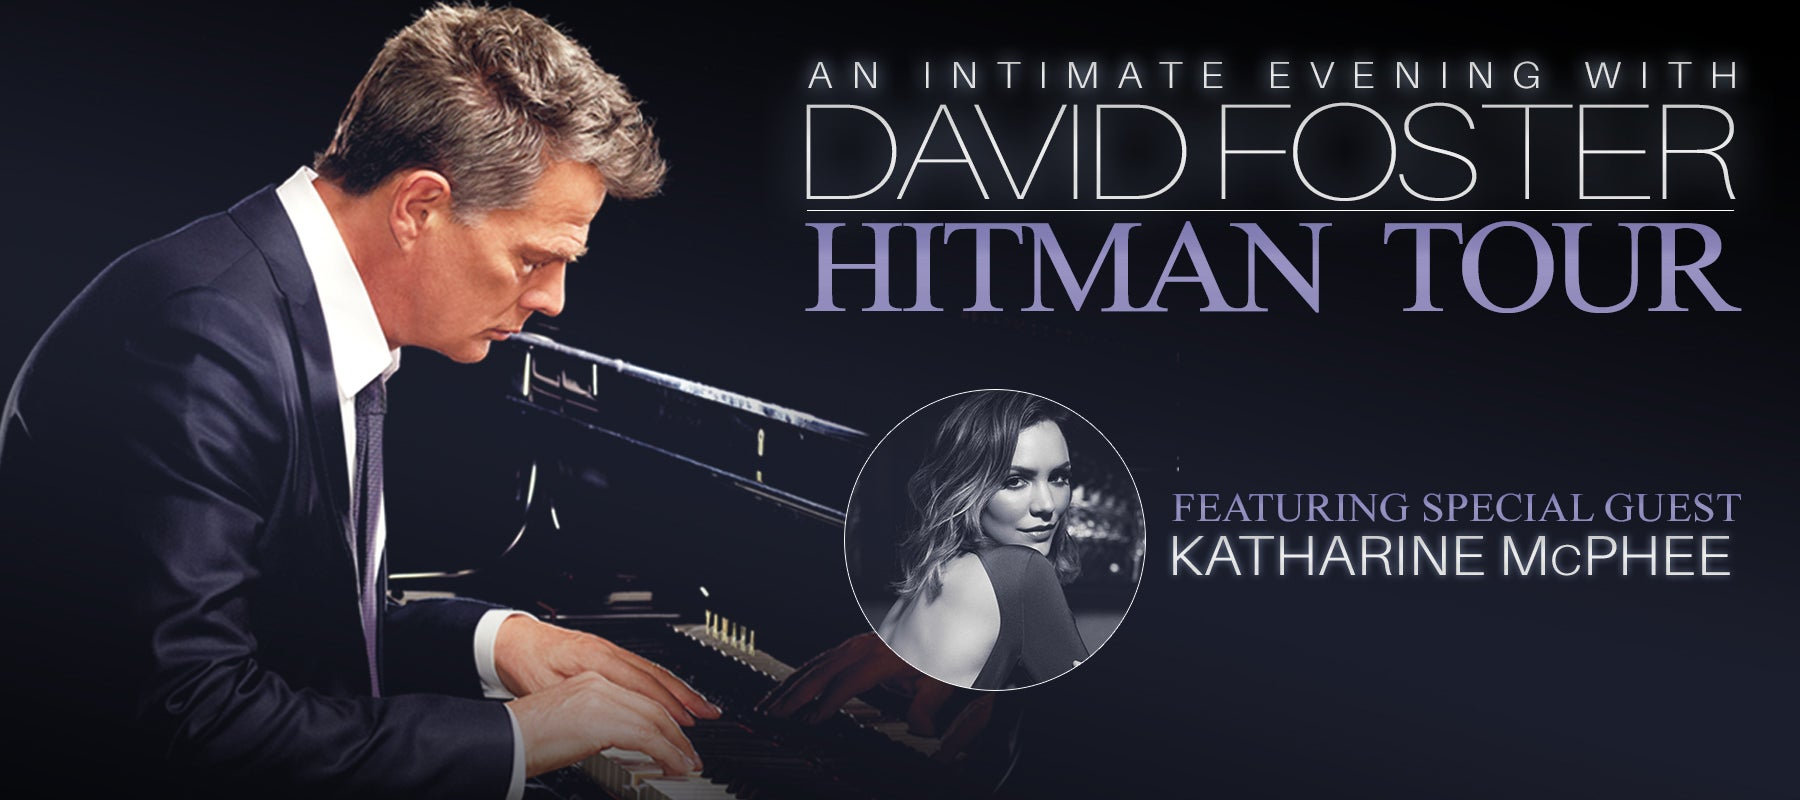 Cancelled: An Intimate Evening with David Foster: Hitman Tour